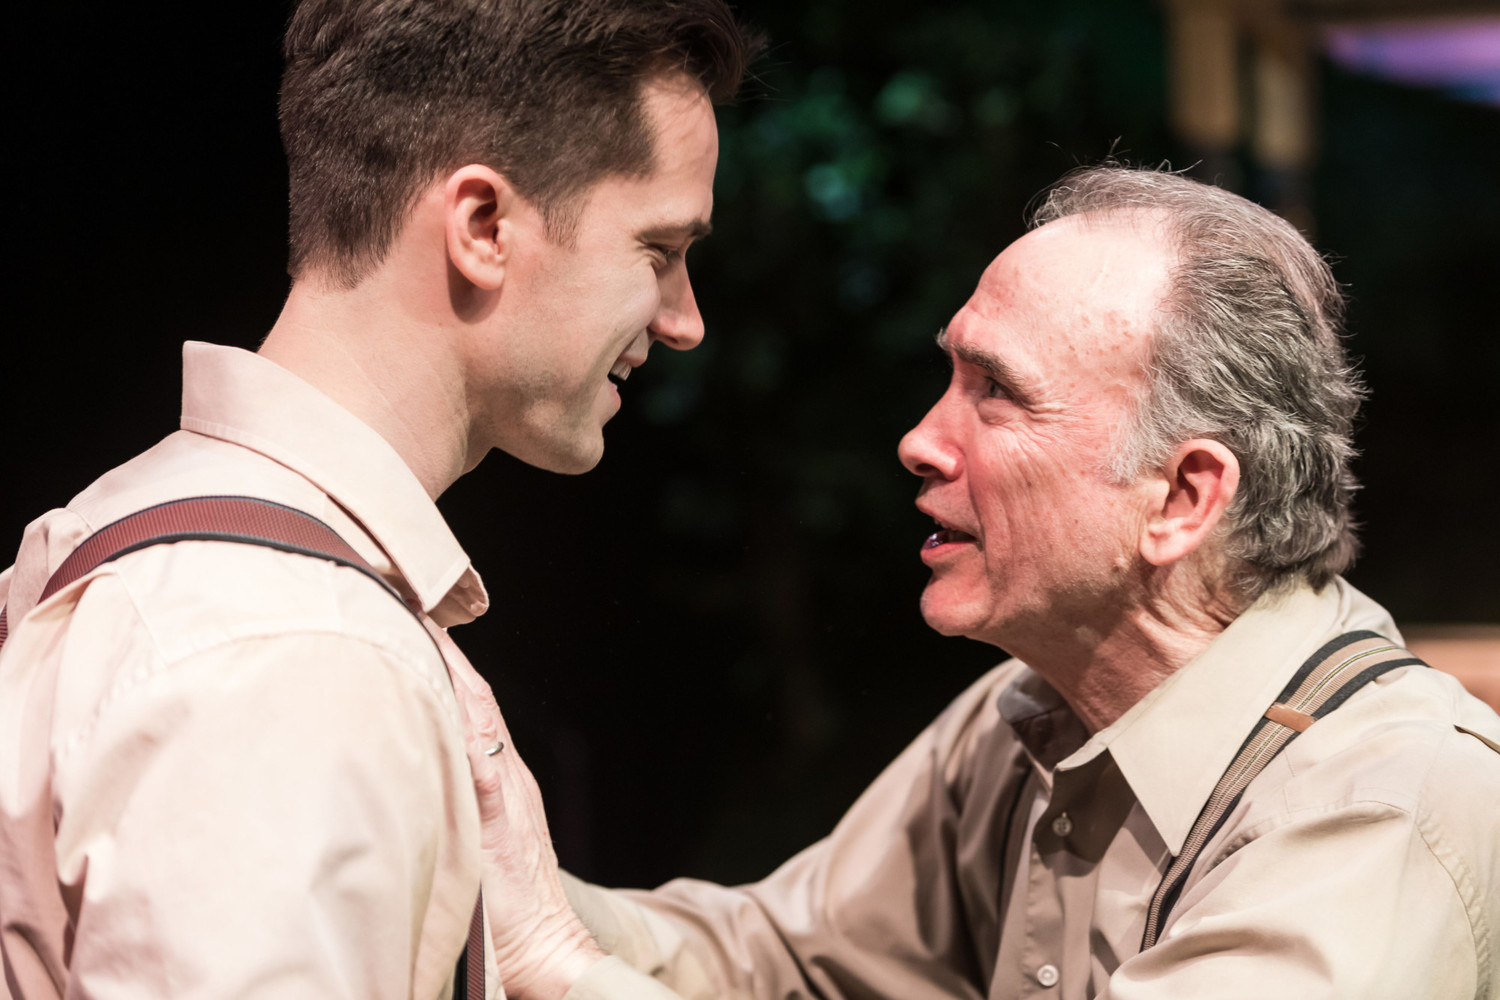 BWW Review: ALL MY SONS at Purple Rose Theatre Company Is A Dramatic Exploration Of Love And Loss